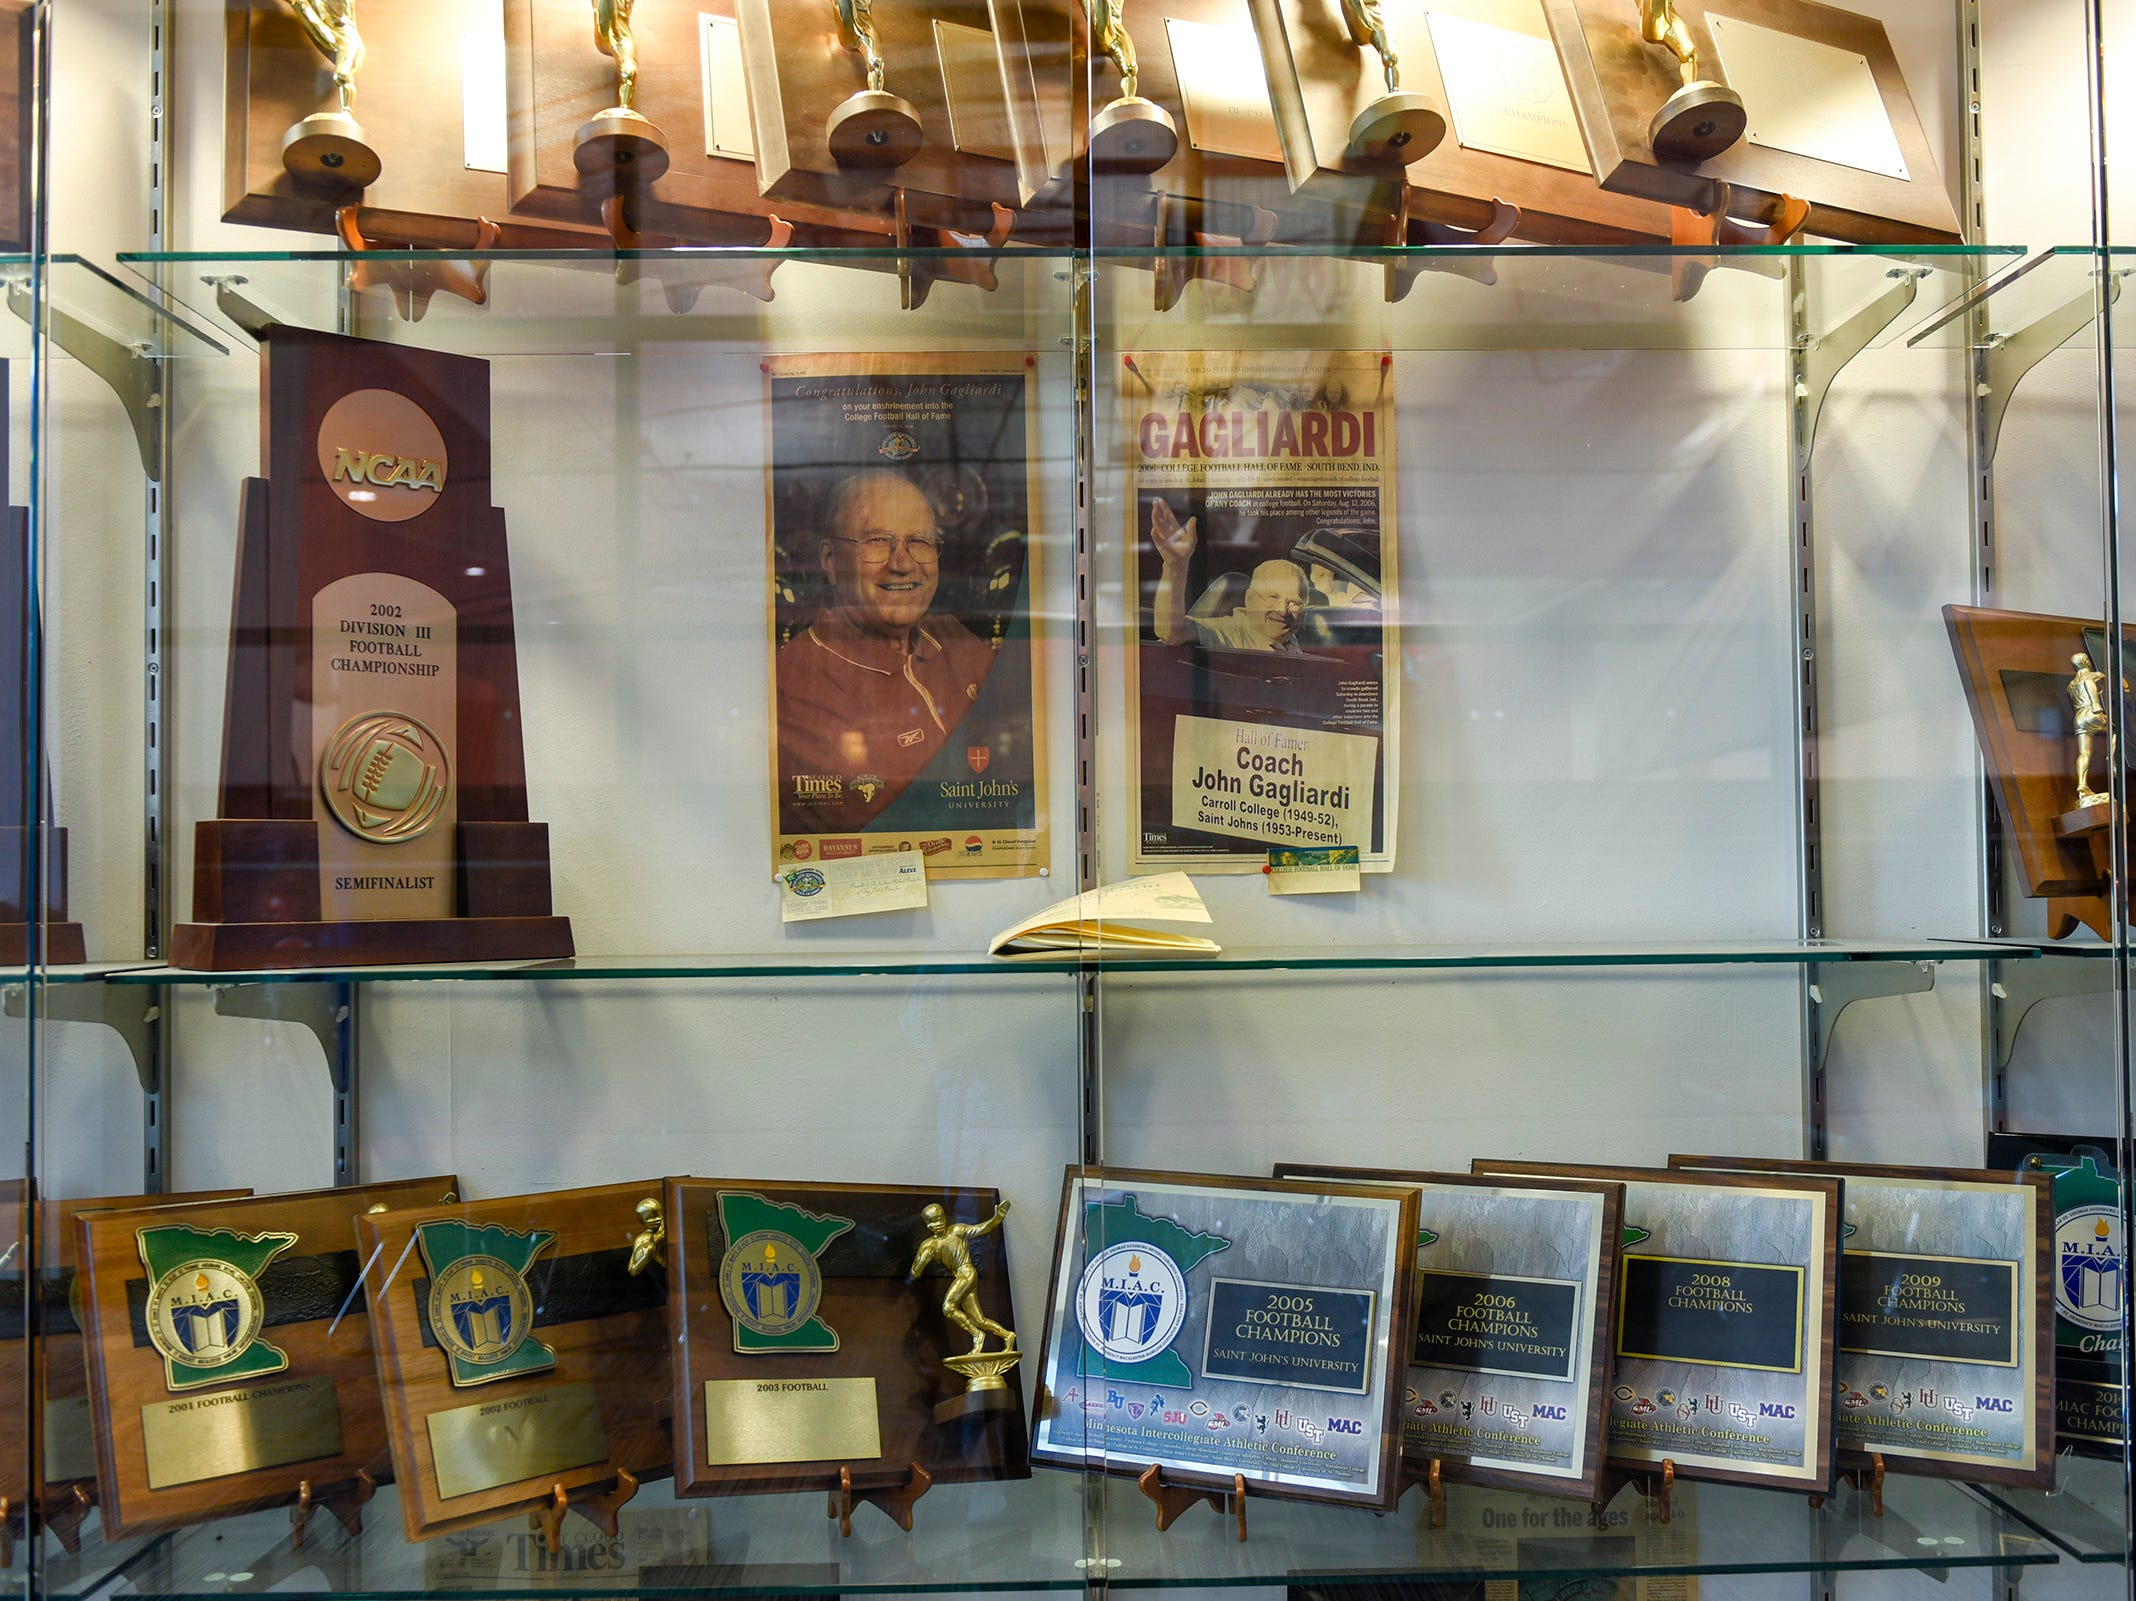 A trophy case at St. John's University shows some the the accomplishments of long time football coach John Gagliardi Monday, Oct. 15, in Warner Palaestra, Collegeville.